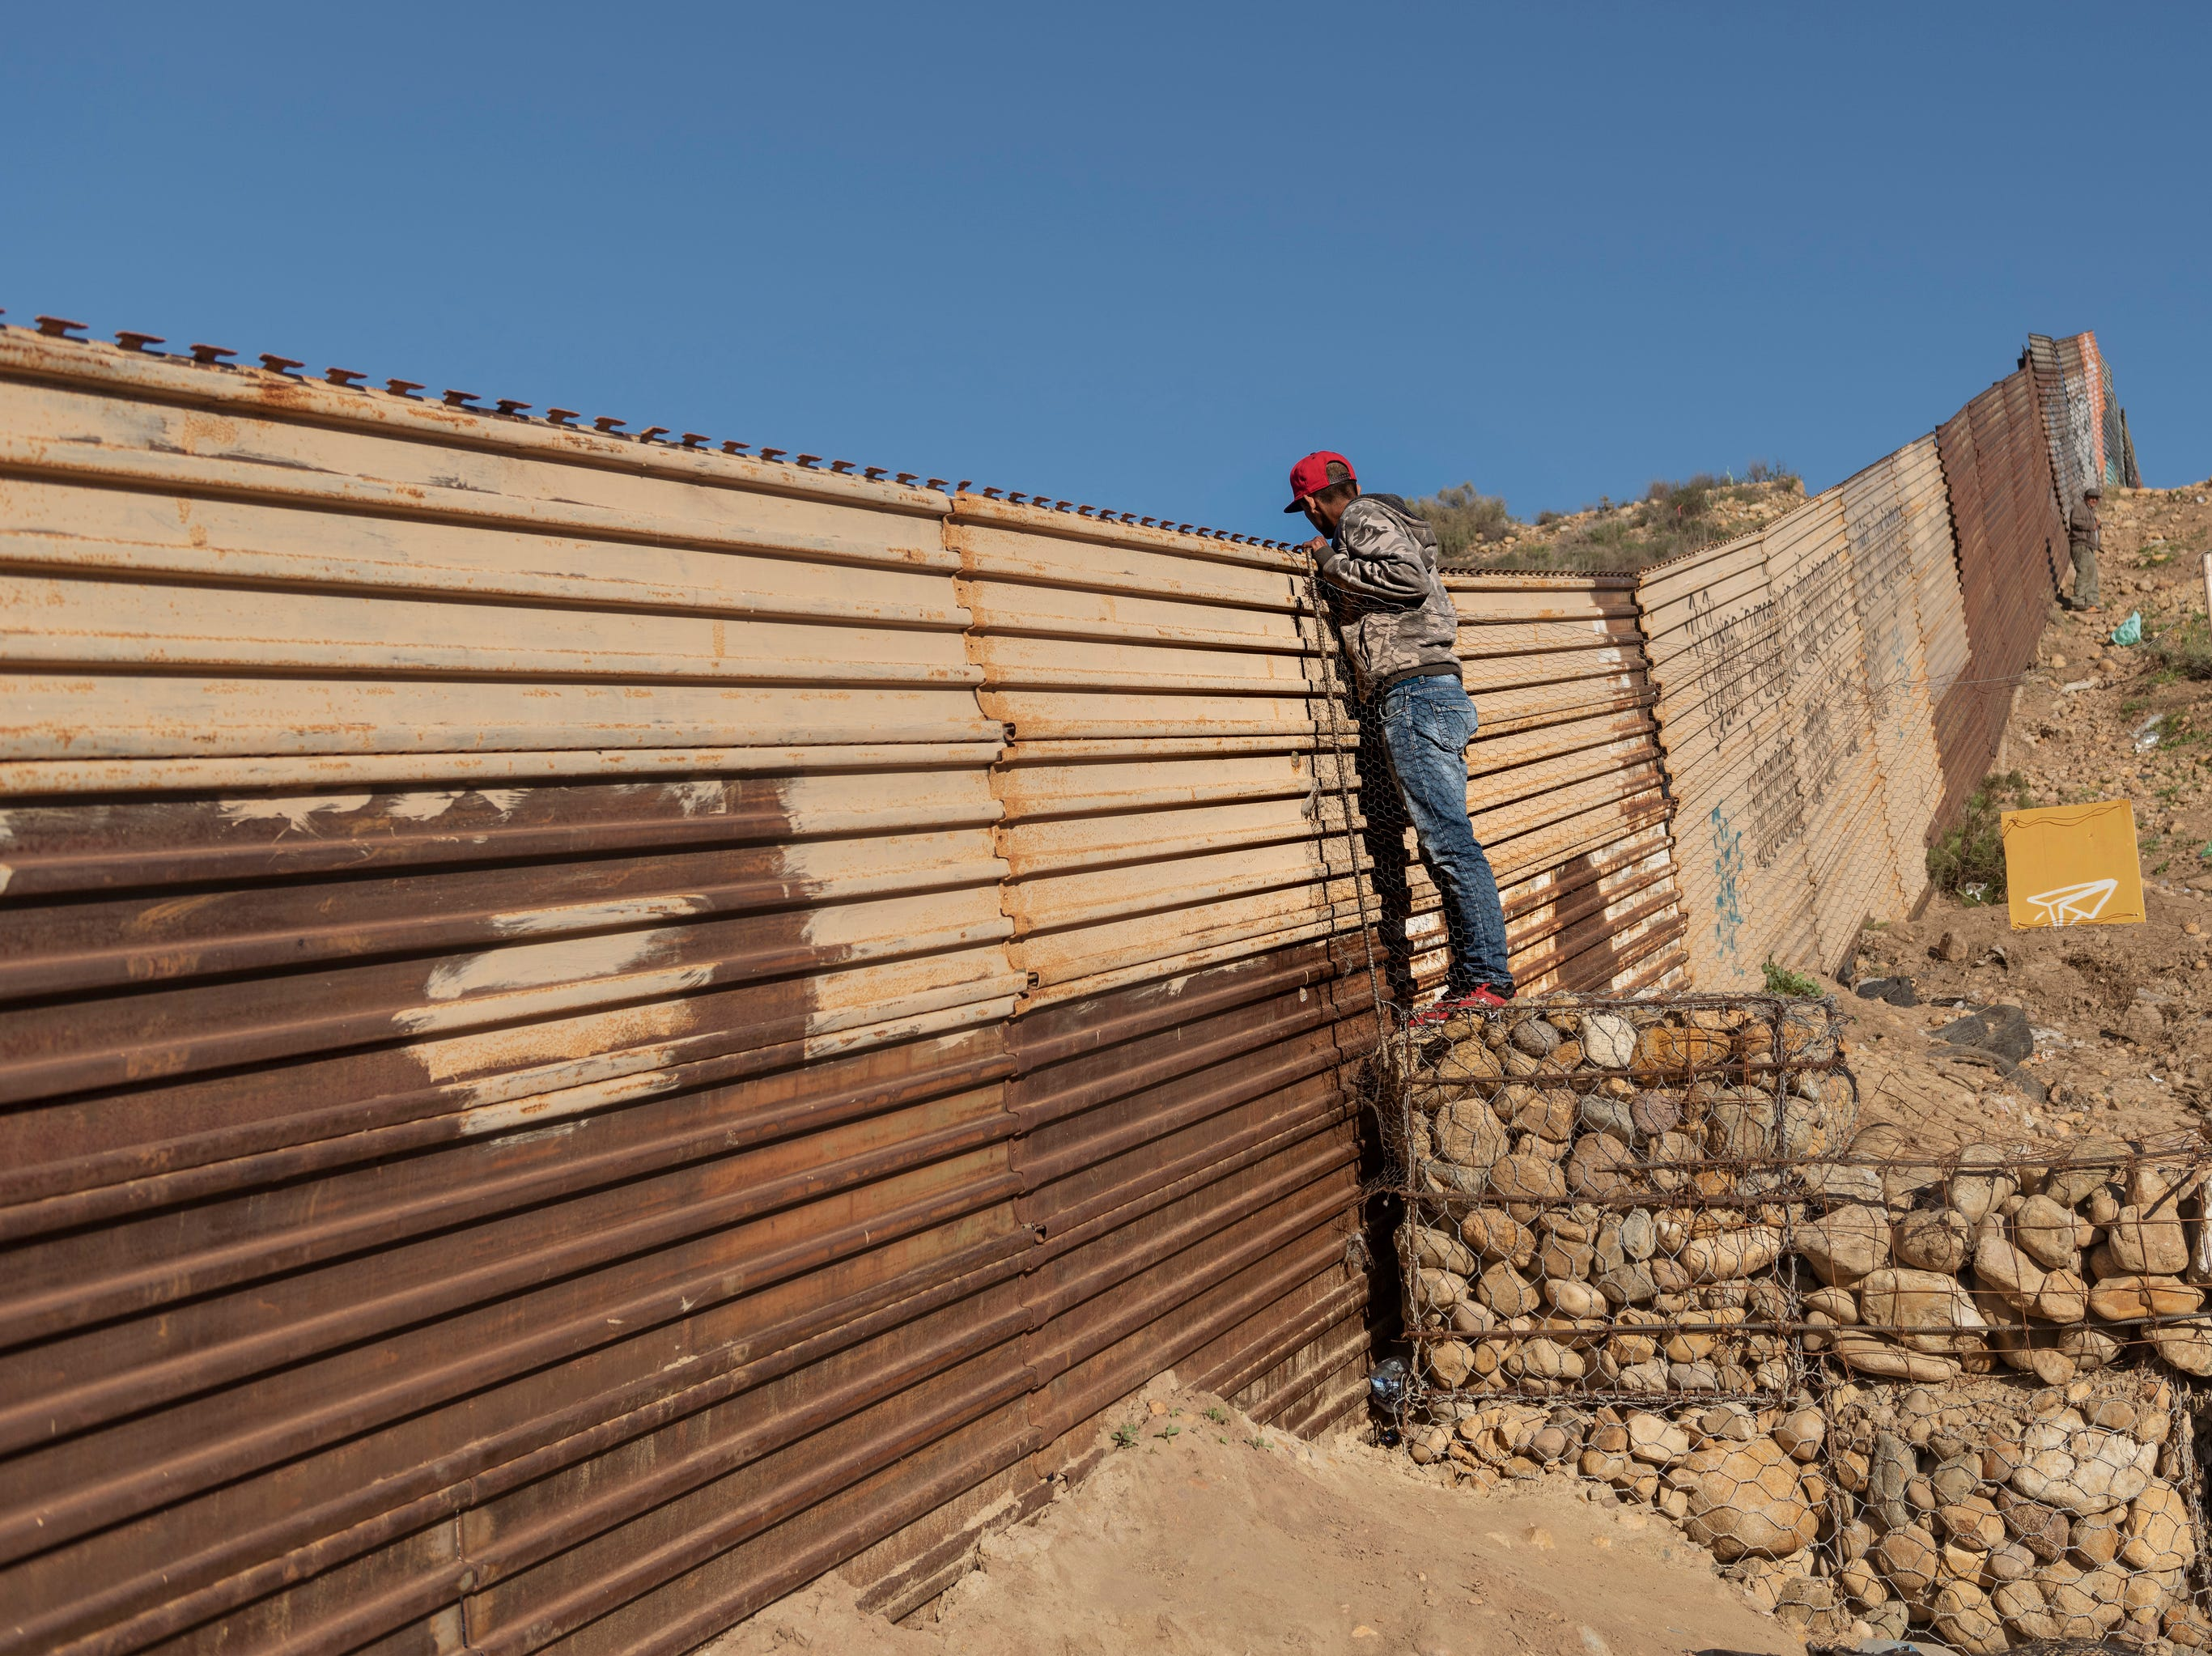 A migrant from Honduras looks from the border fence into the U.S. side to San Diego, Calif., from Tijuana, Mexico, Thursday, Jan. 3, 2019.